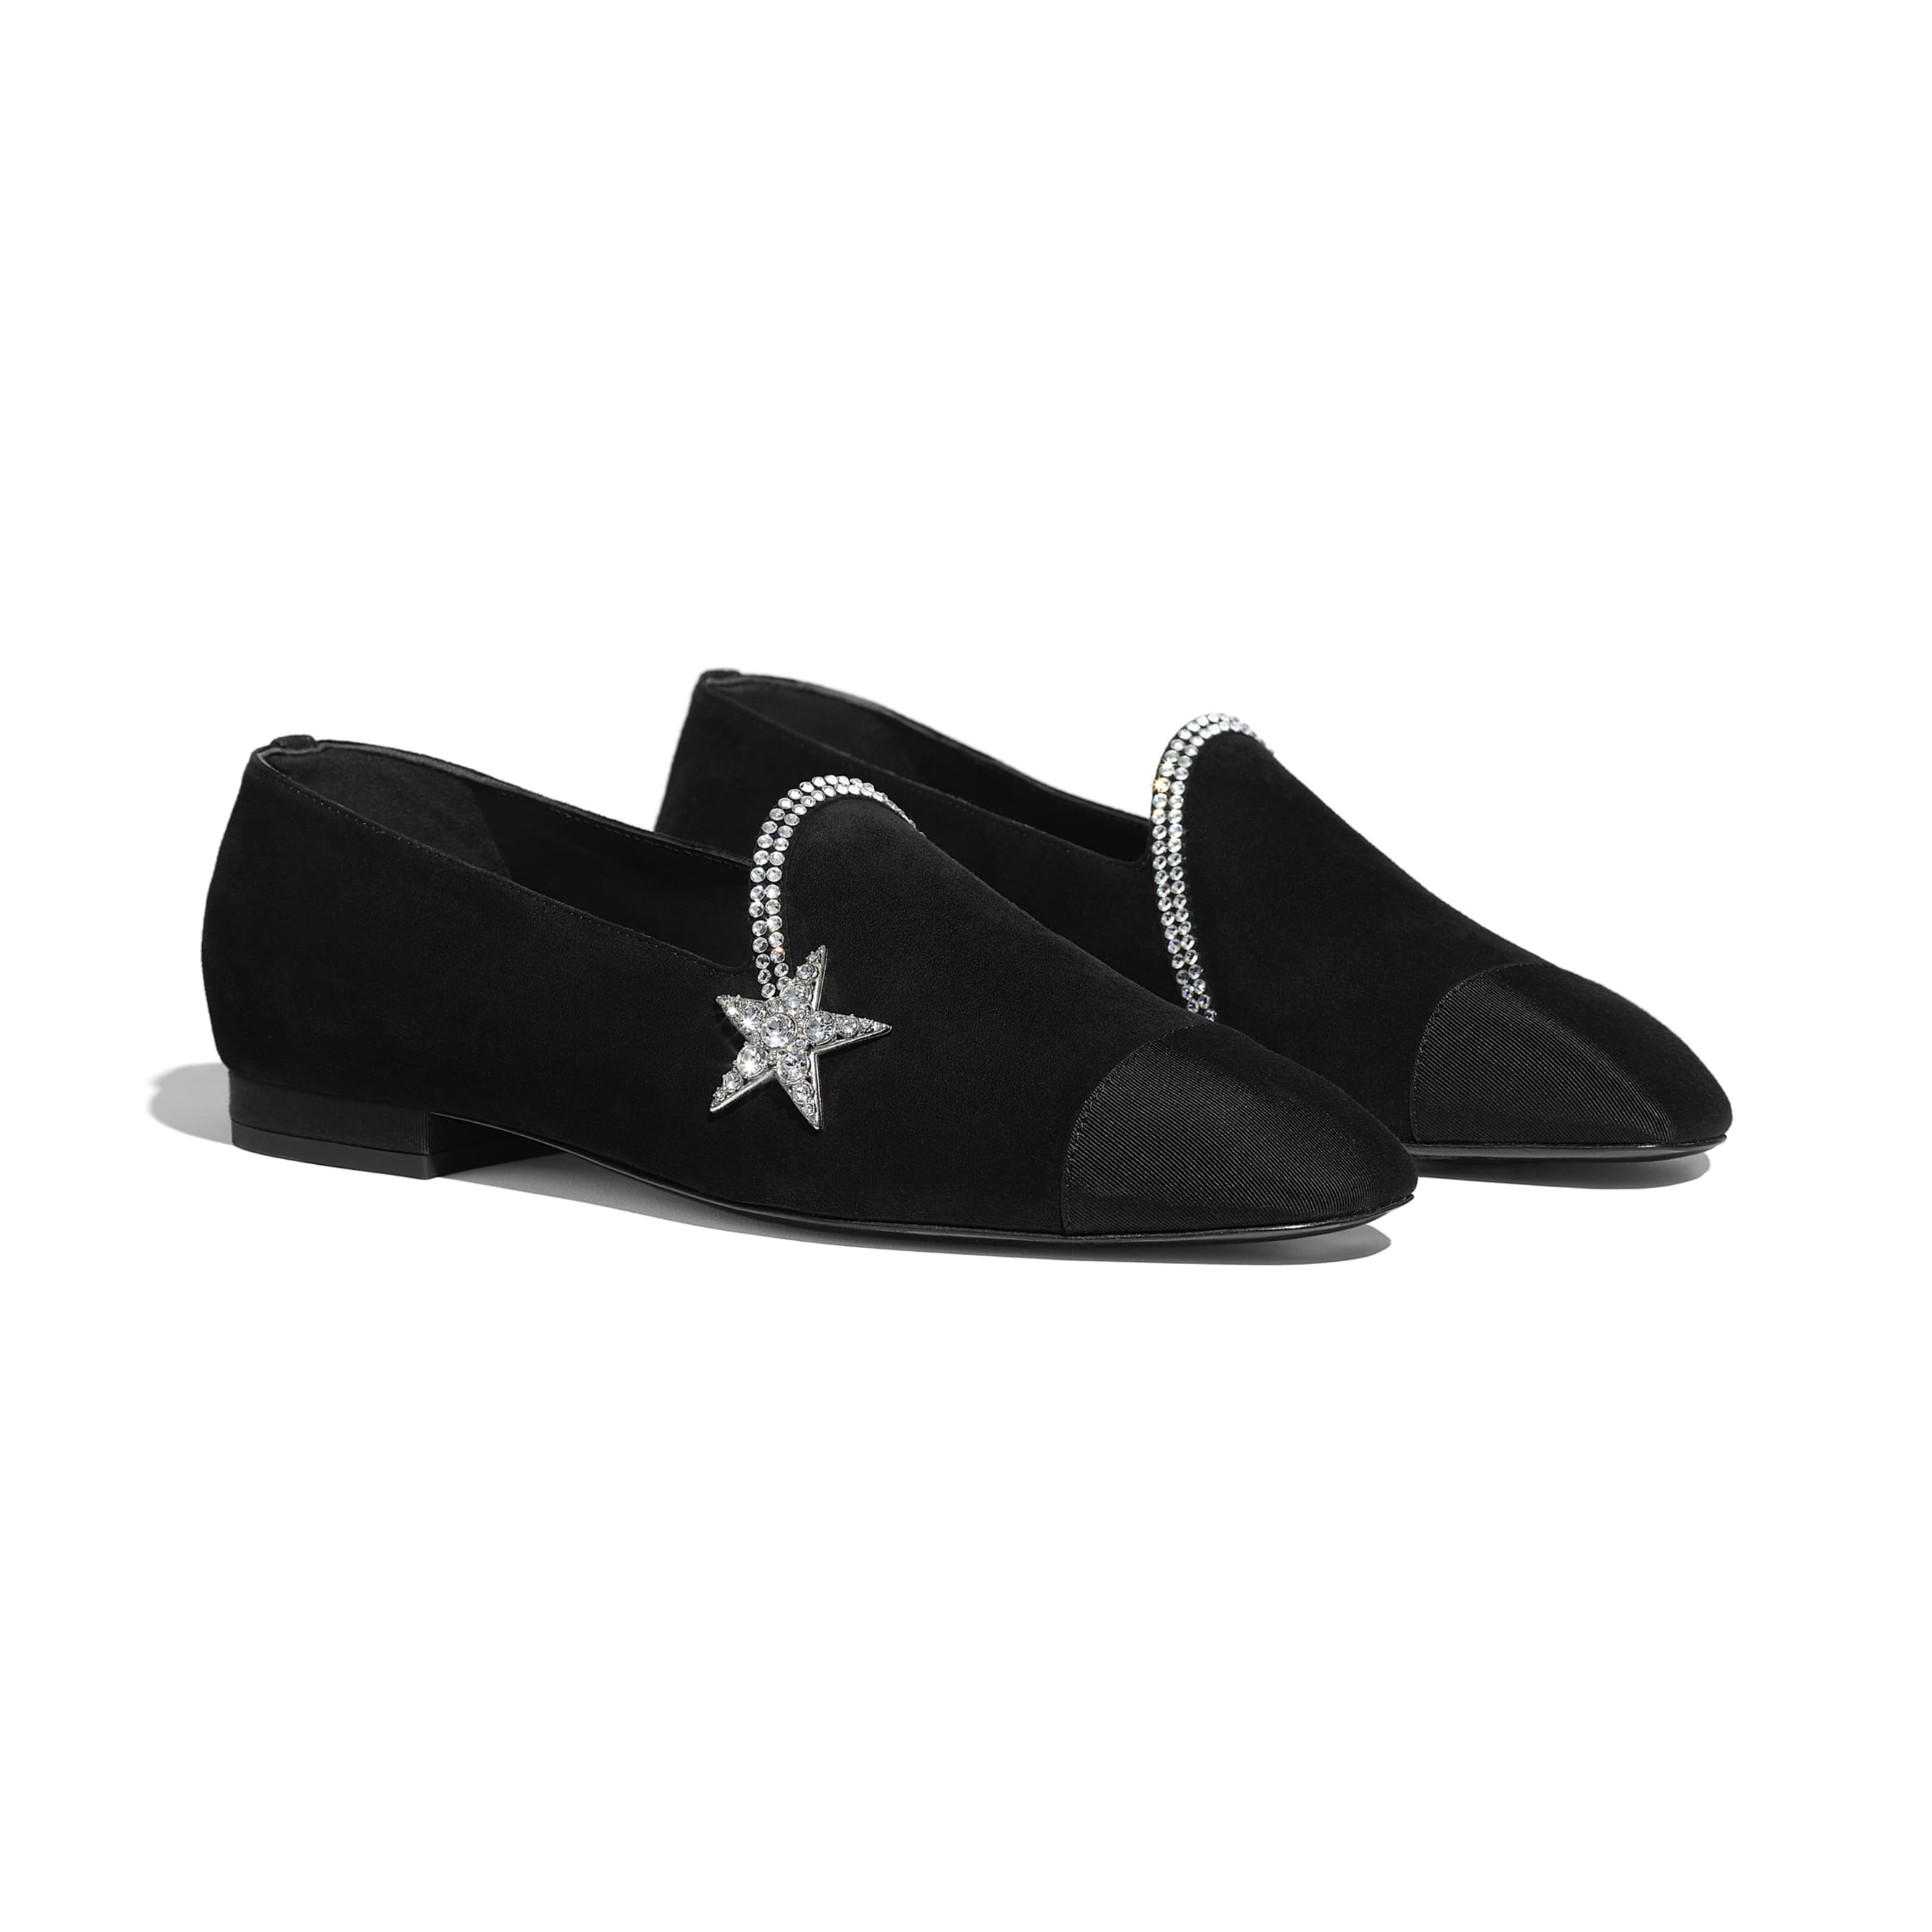 Loafers - Black - Suede Calfskin & Grosgrain - Alternative view - see standard sized version